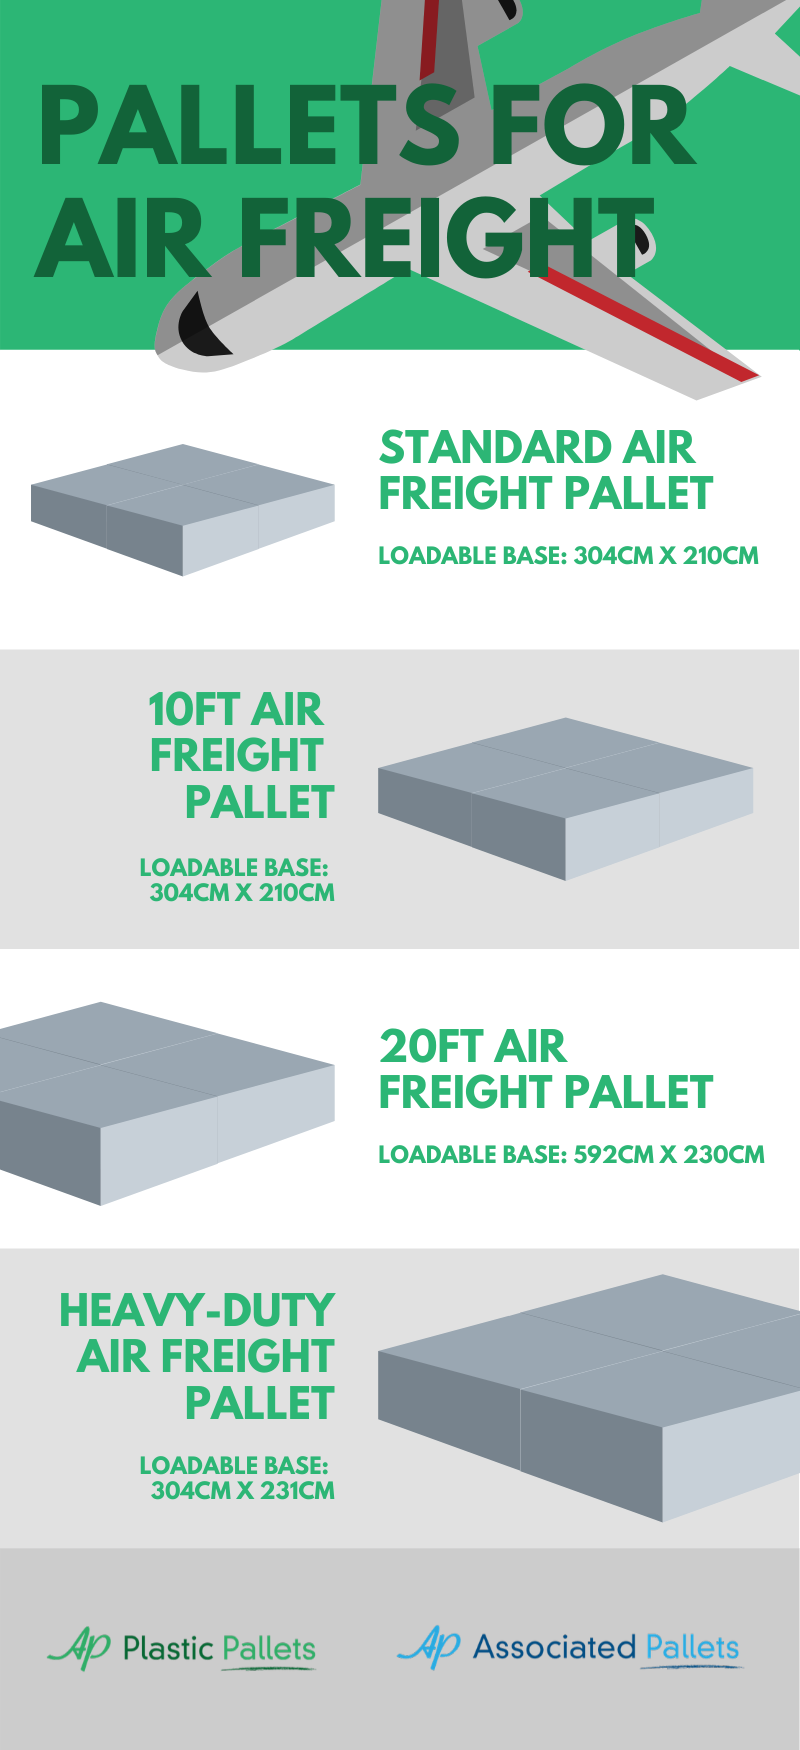 pallets for air freight sizes